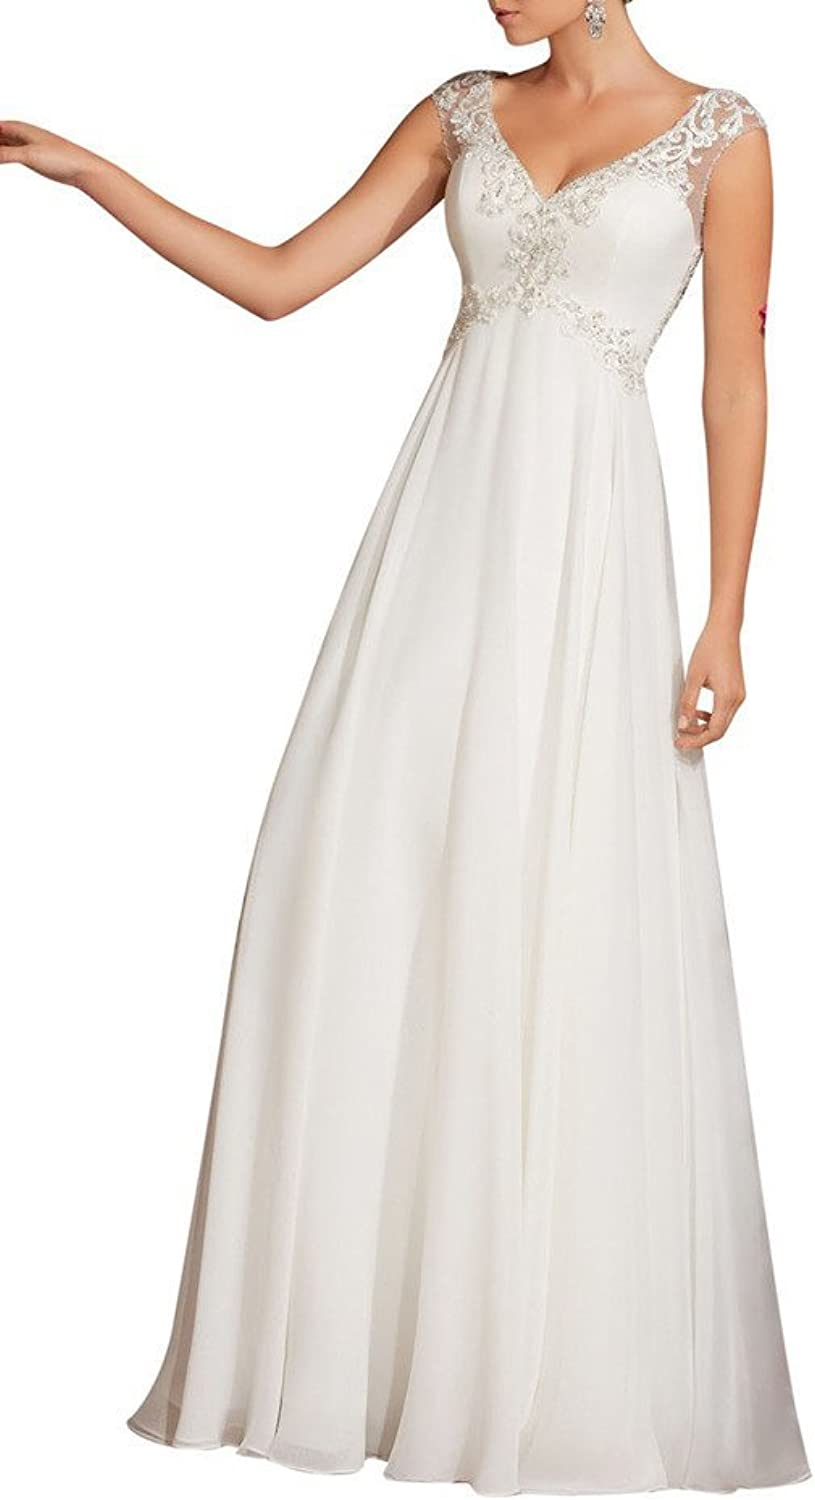 Angel Bride 2015 White Illusion Wedding Dresses with Court Train